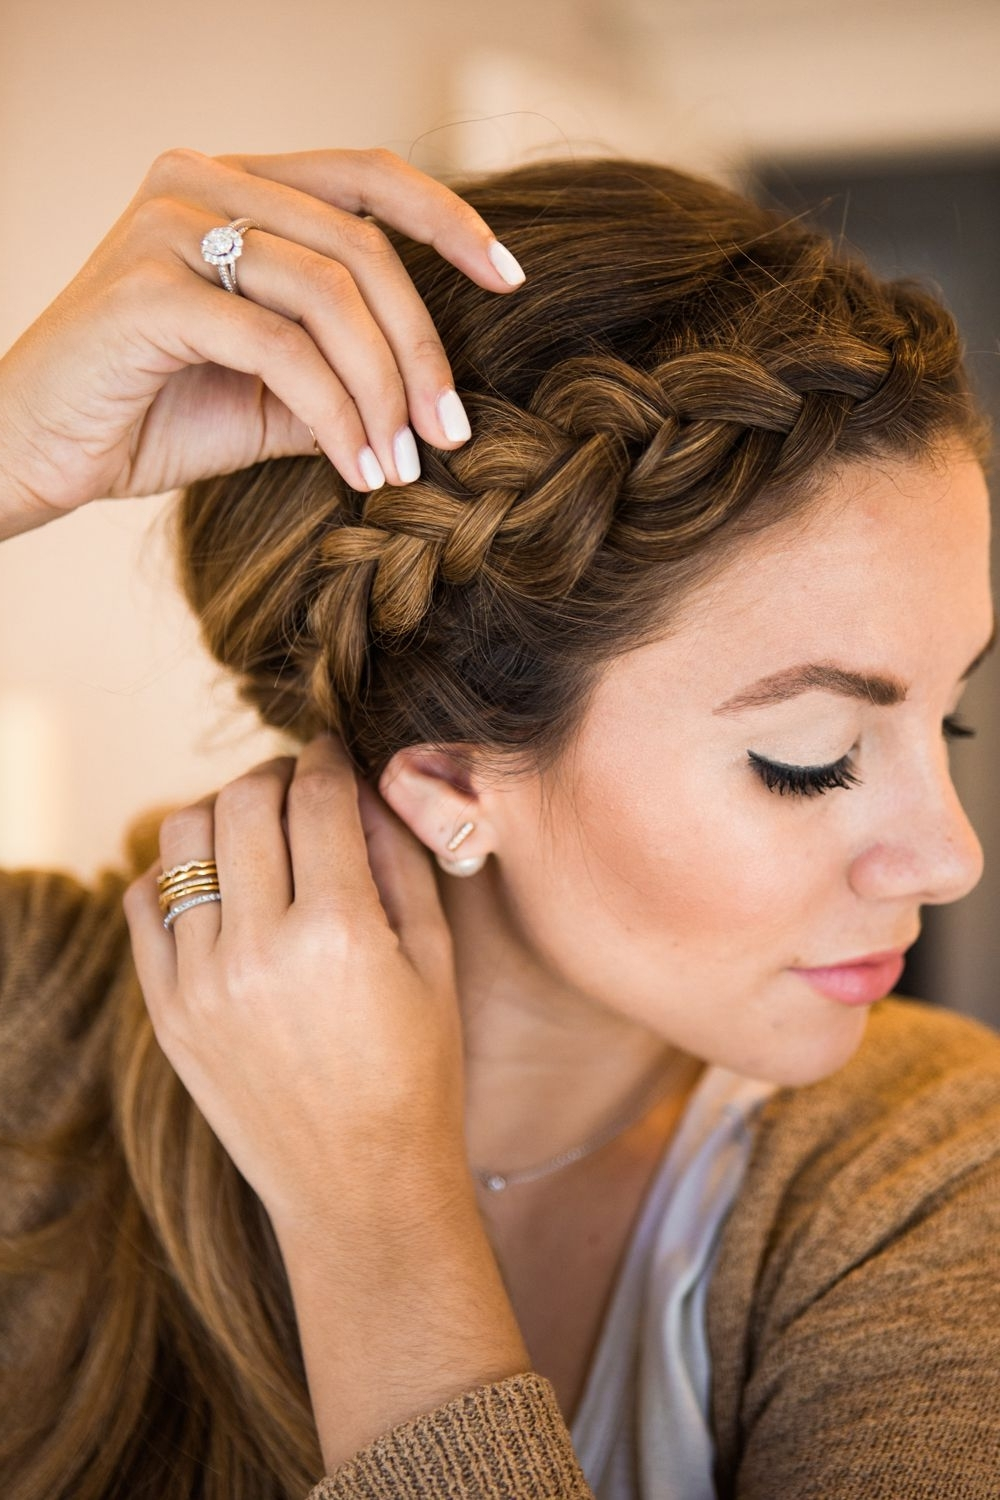 Pinterest Intended For Current Long Pony Hairstyles With A Side Braid (View 3 of 20)